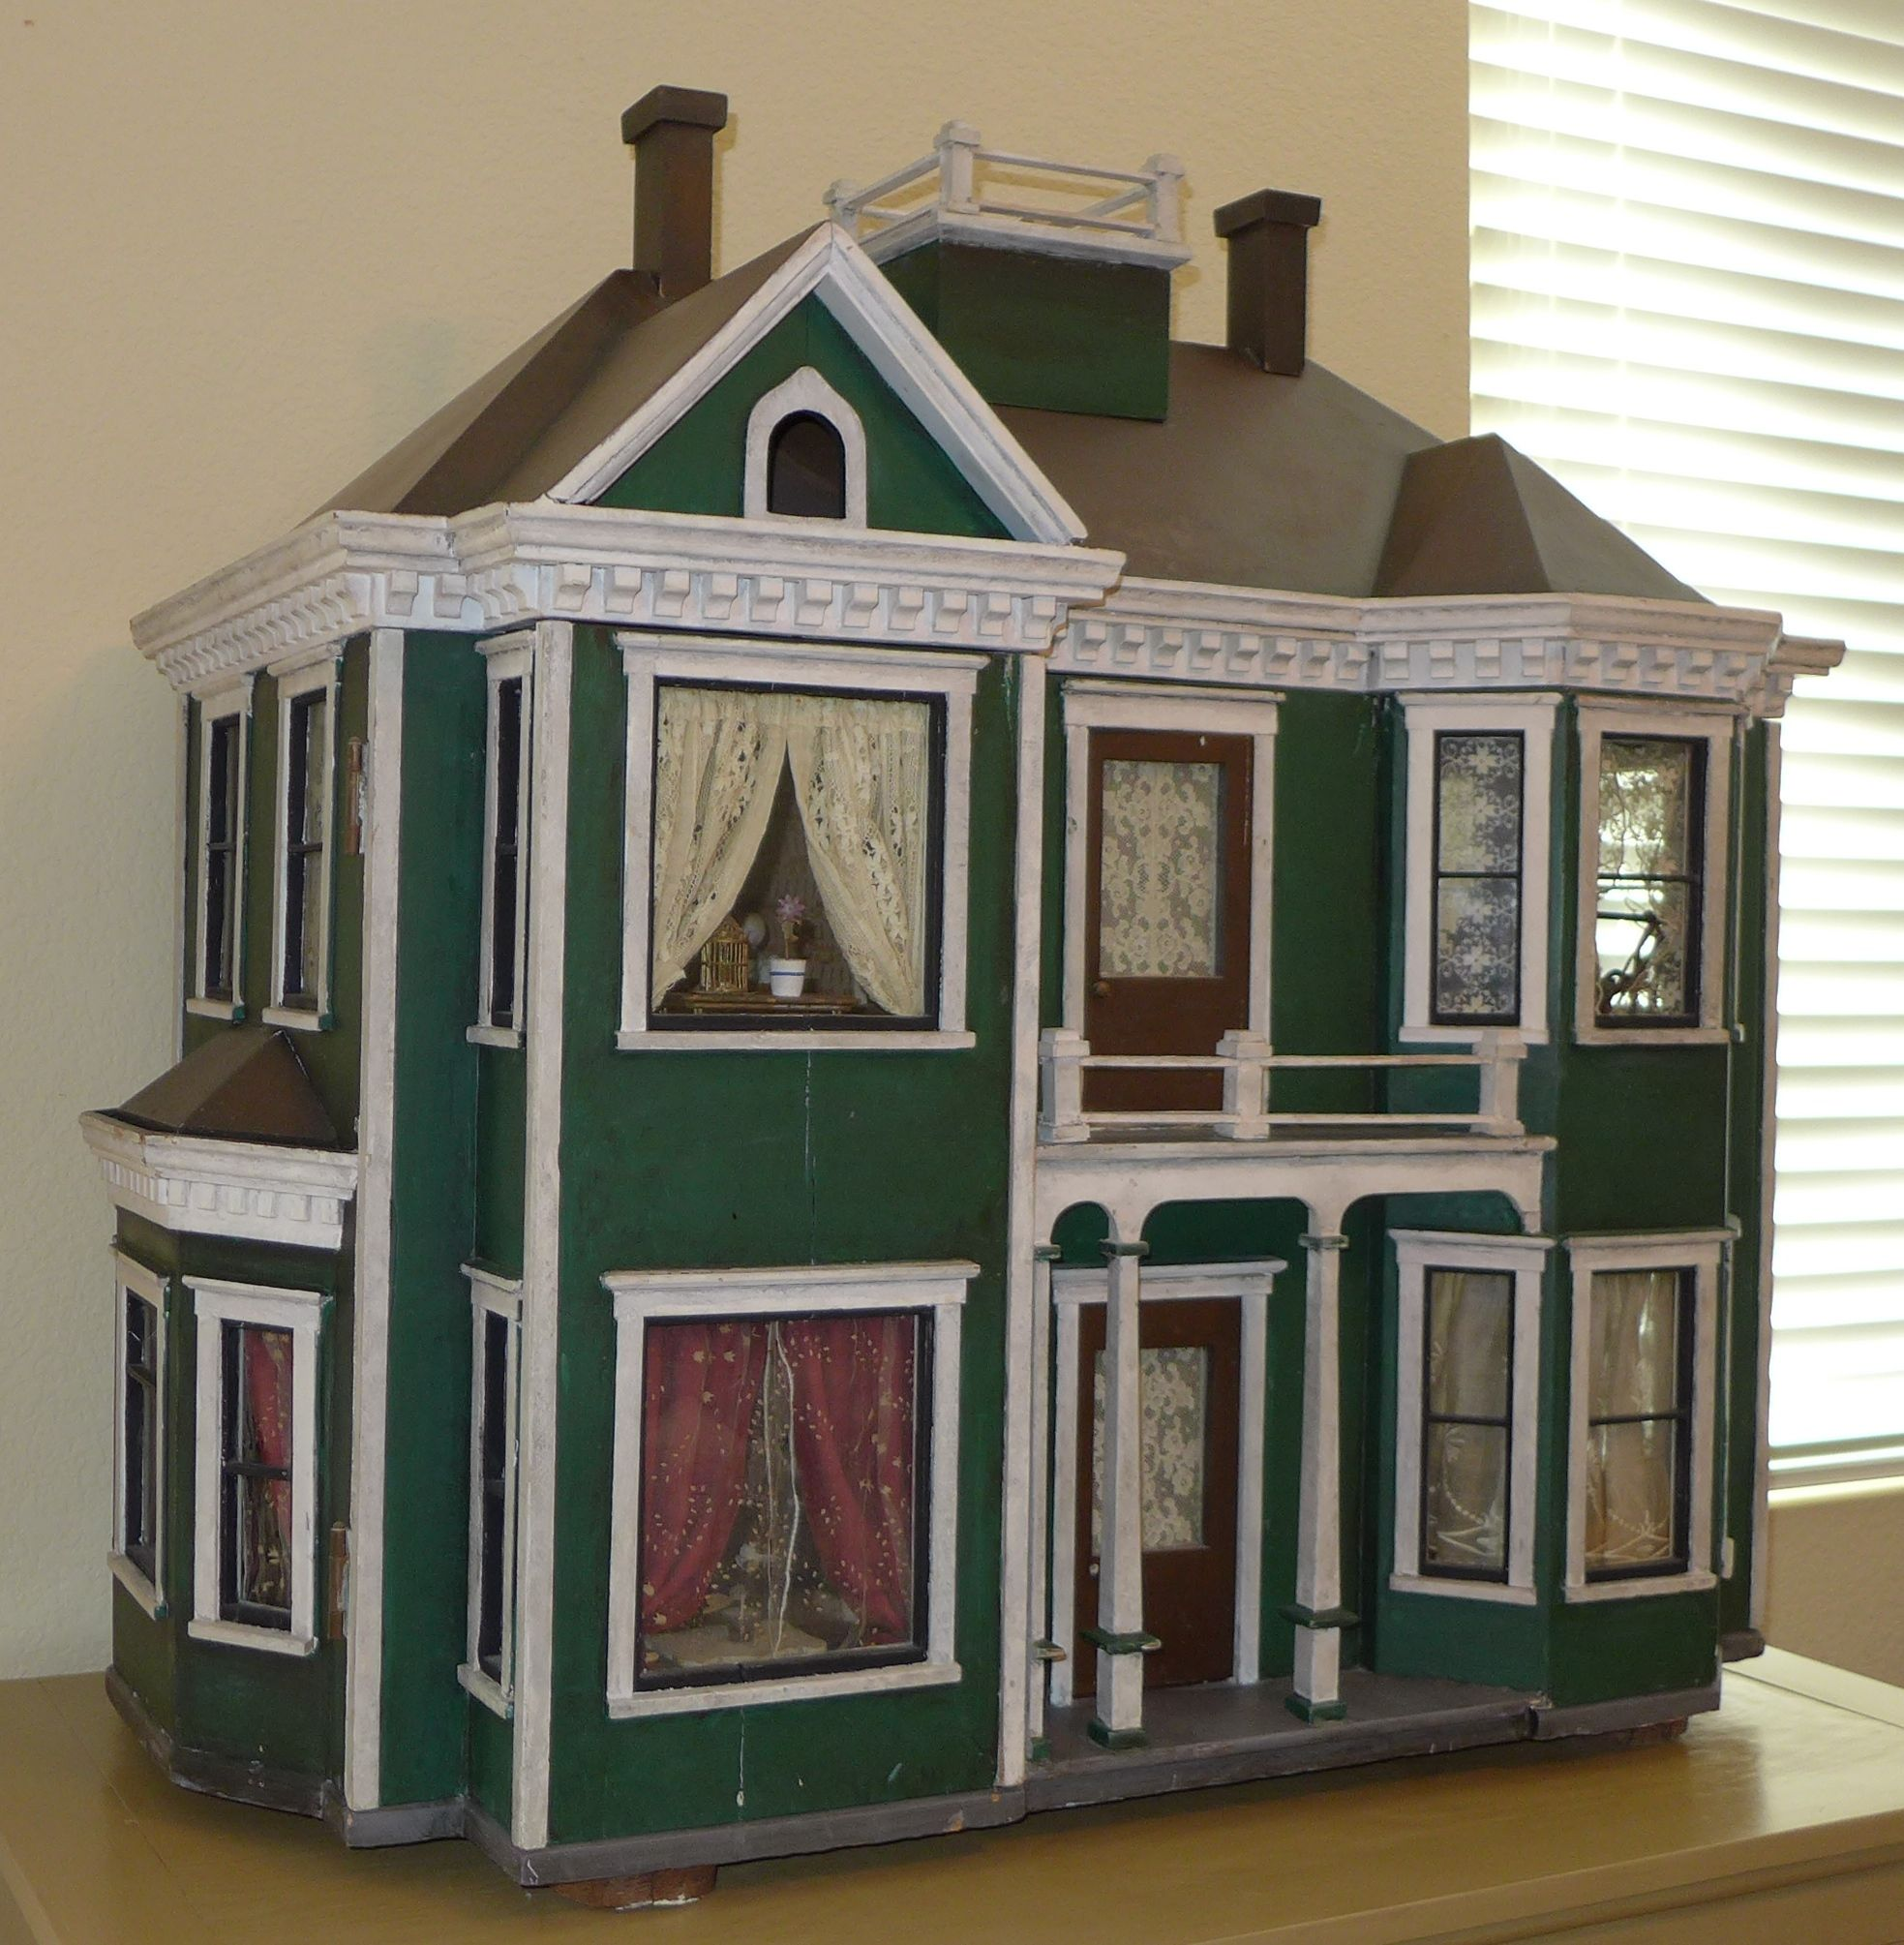 Design Homemade Doll Houses beautiful homemade dollhouse has bay windows widows walk front balcony and double chimneys